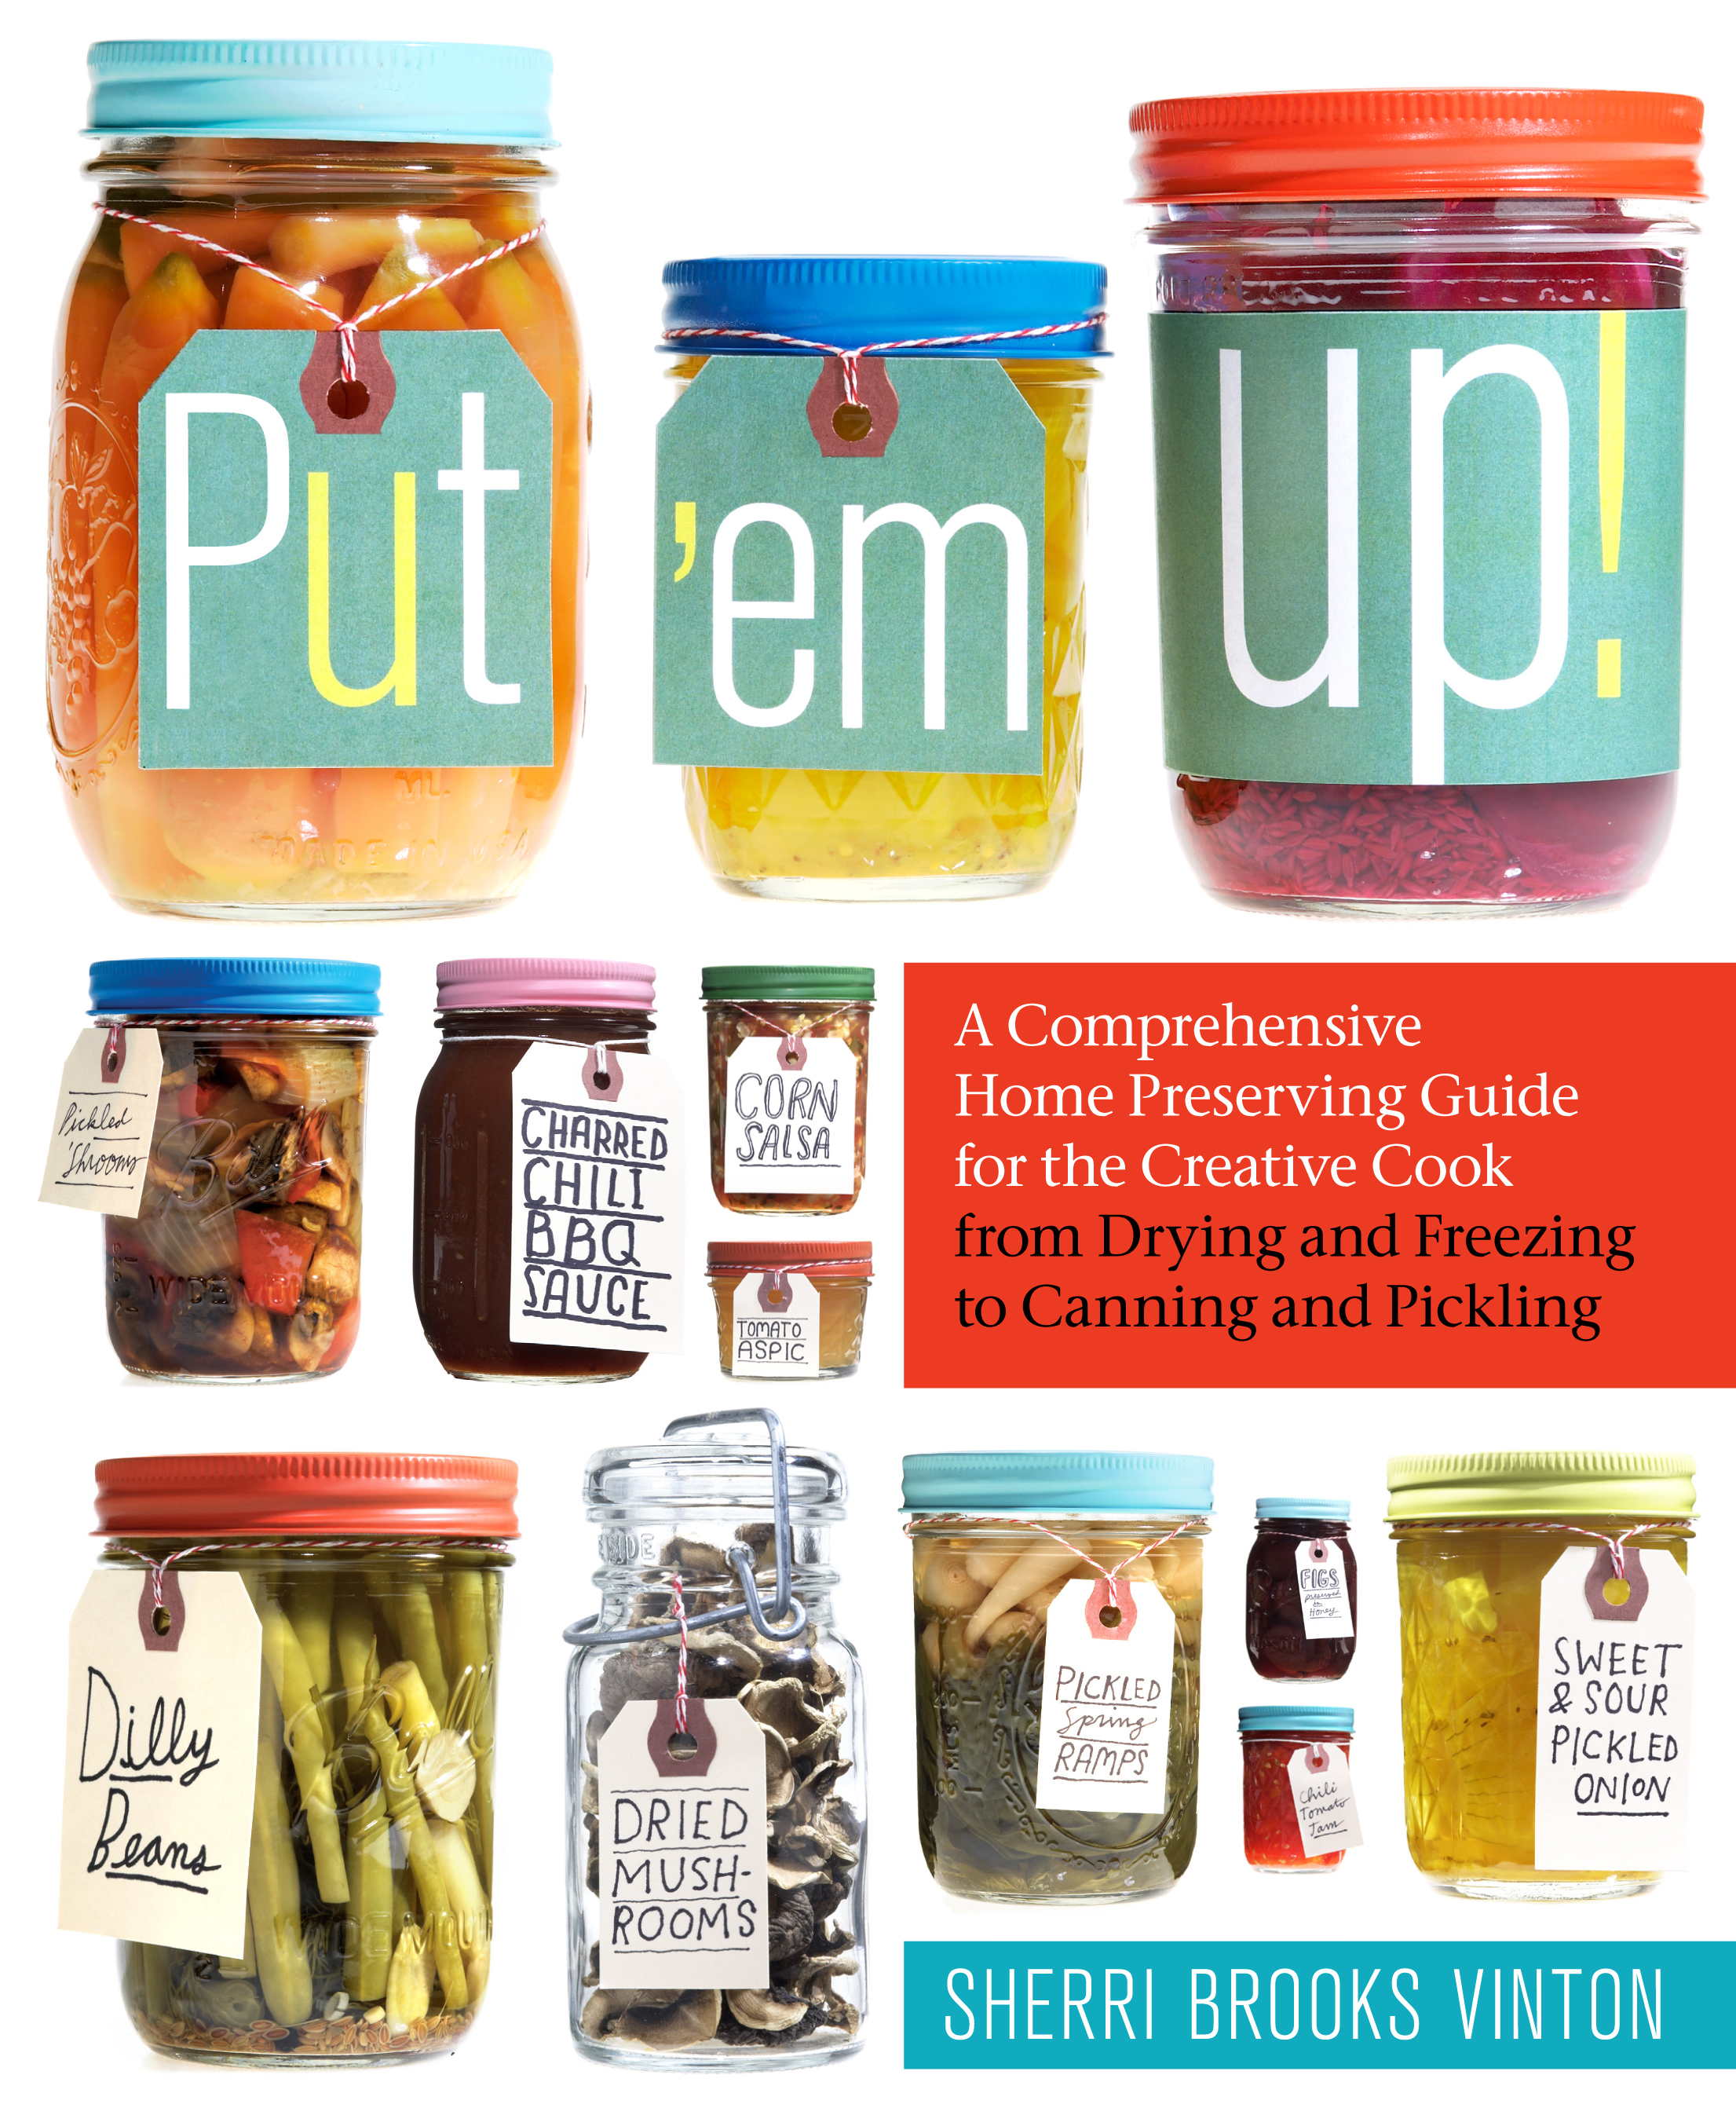 Put 'em Up! A Comprehensive Home Preserving Guide for the Creative Cook, from Drying and Freezing to Canning and Pickling - Sherri Brooks Vinton